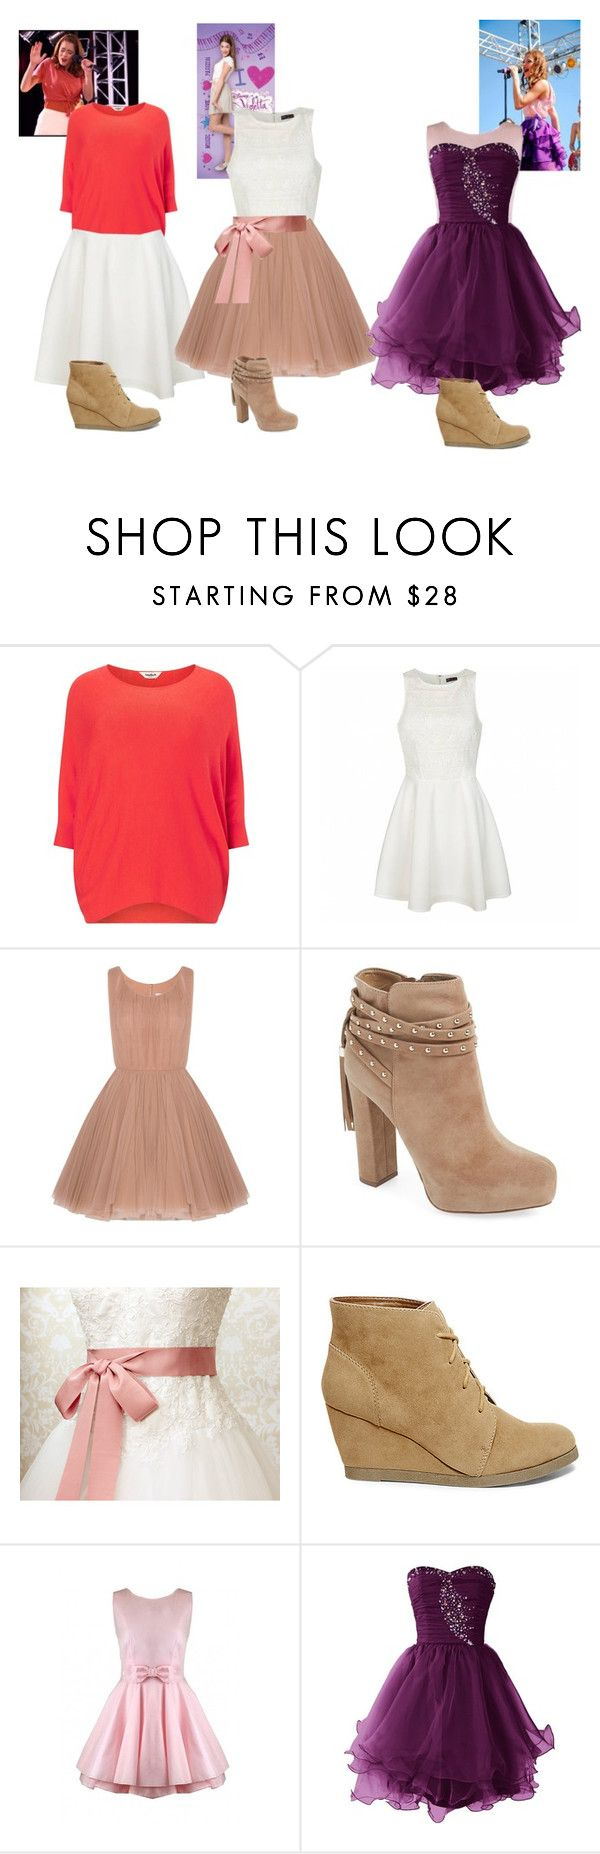 """Violetta 1"" by julia-clv ❤ liked on Polyvore featuring Studio 8, Ally Fashion, Lara Khoury, Jessica Simpson, Steve Madden, Jones + Jones, women's clothing, women, female and woman"